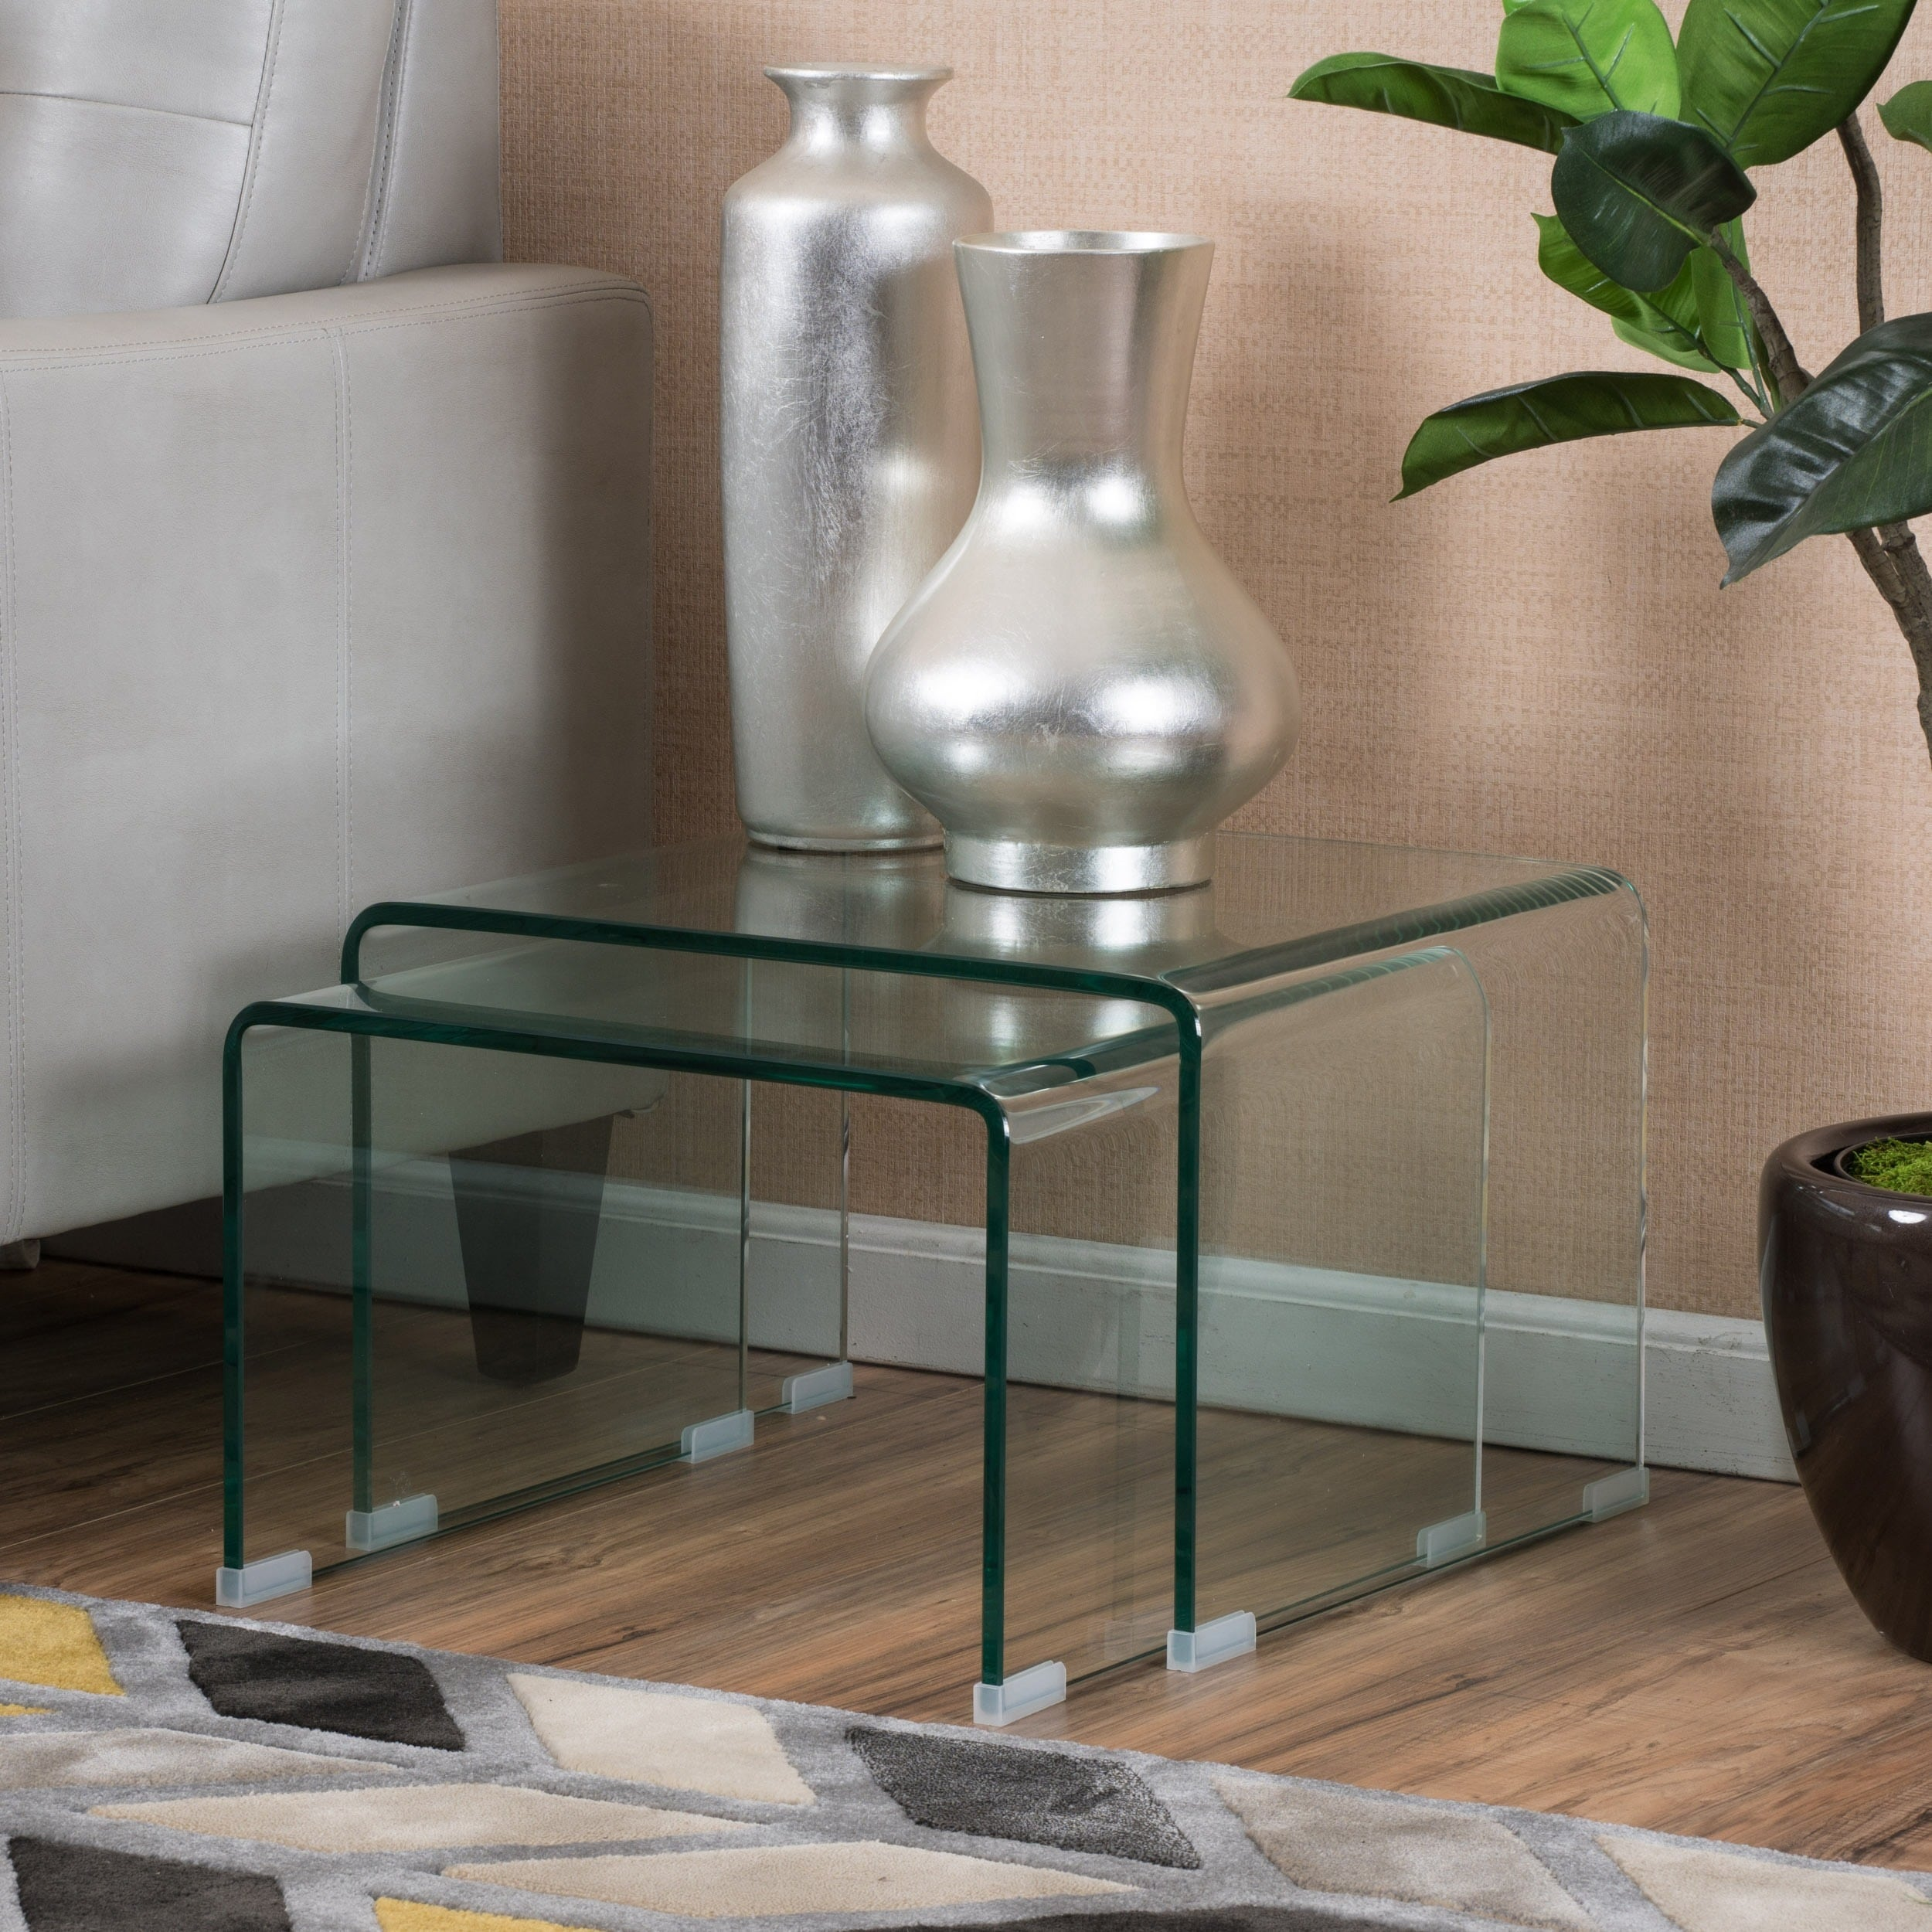 Ramona Glass Accent Nesting Tables (Set of 2) by Christop...